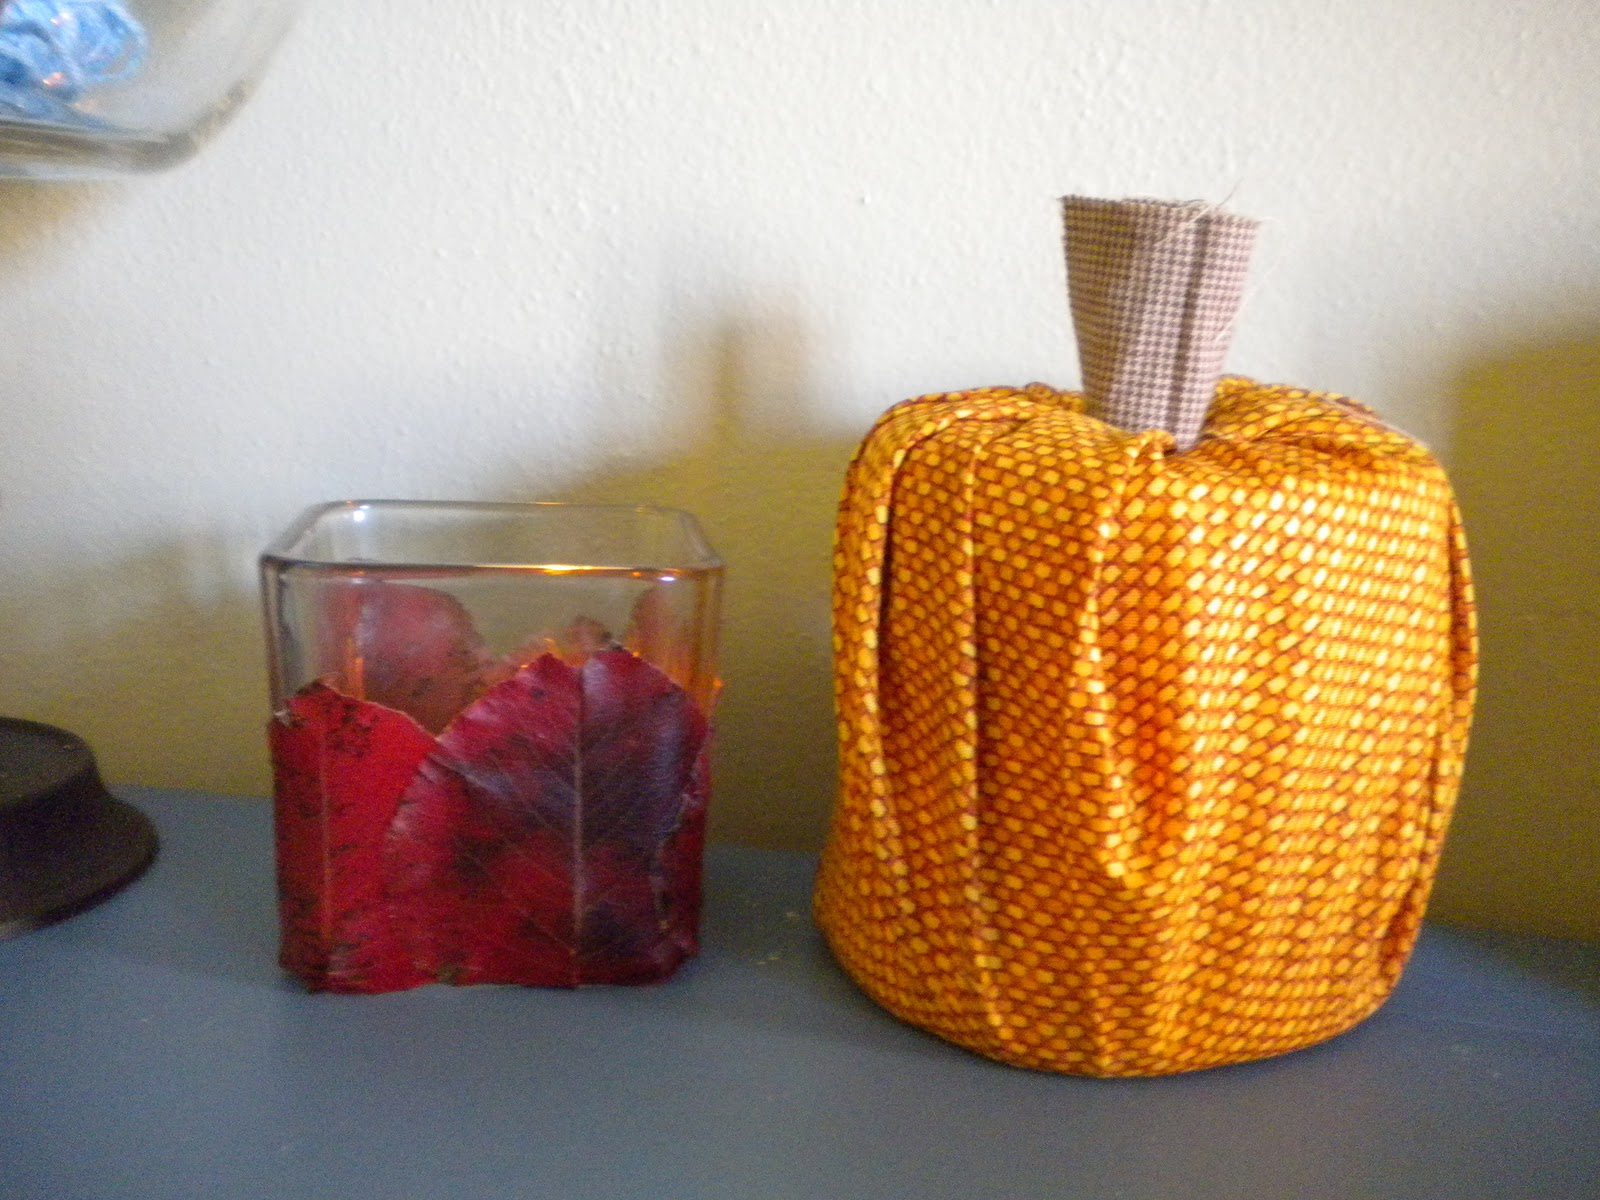 4081455883681125 on Fall Art Projects For Kids Textured Pumpkins Using Crayon